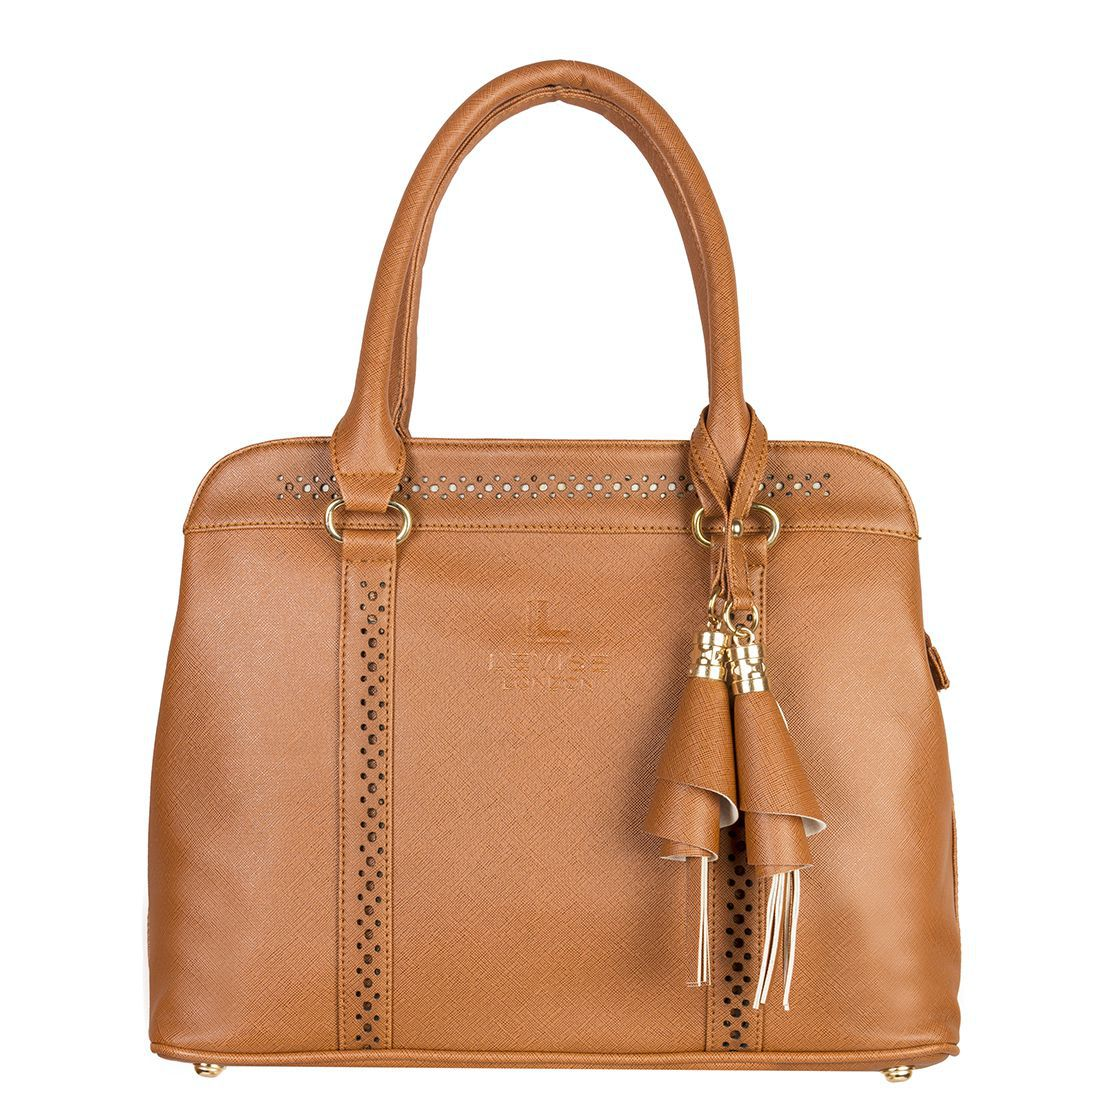 LEVISE LONDON Brown Faux Leather Handheld